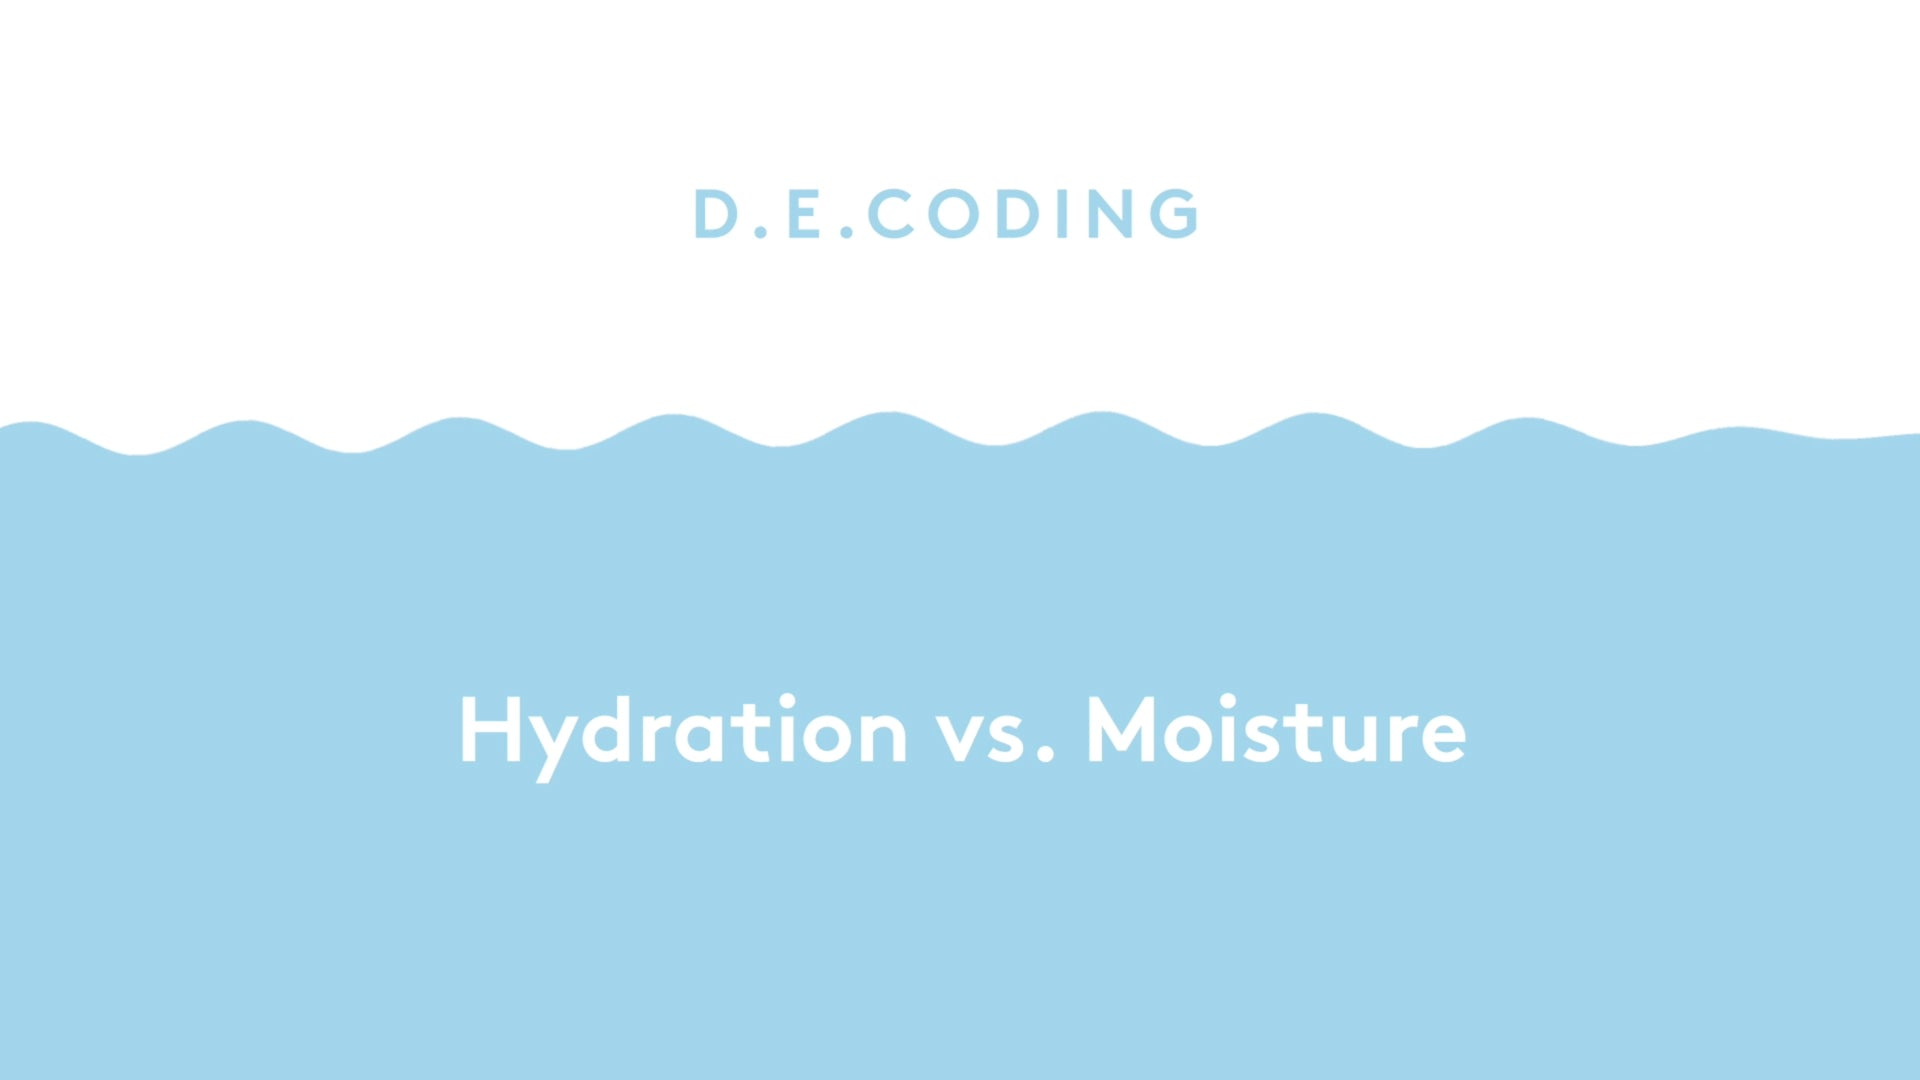 video describing the difference between Hydration and Moisture in the skin